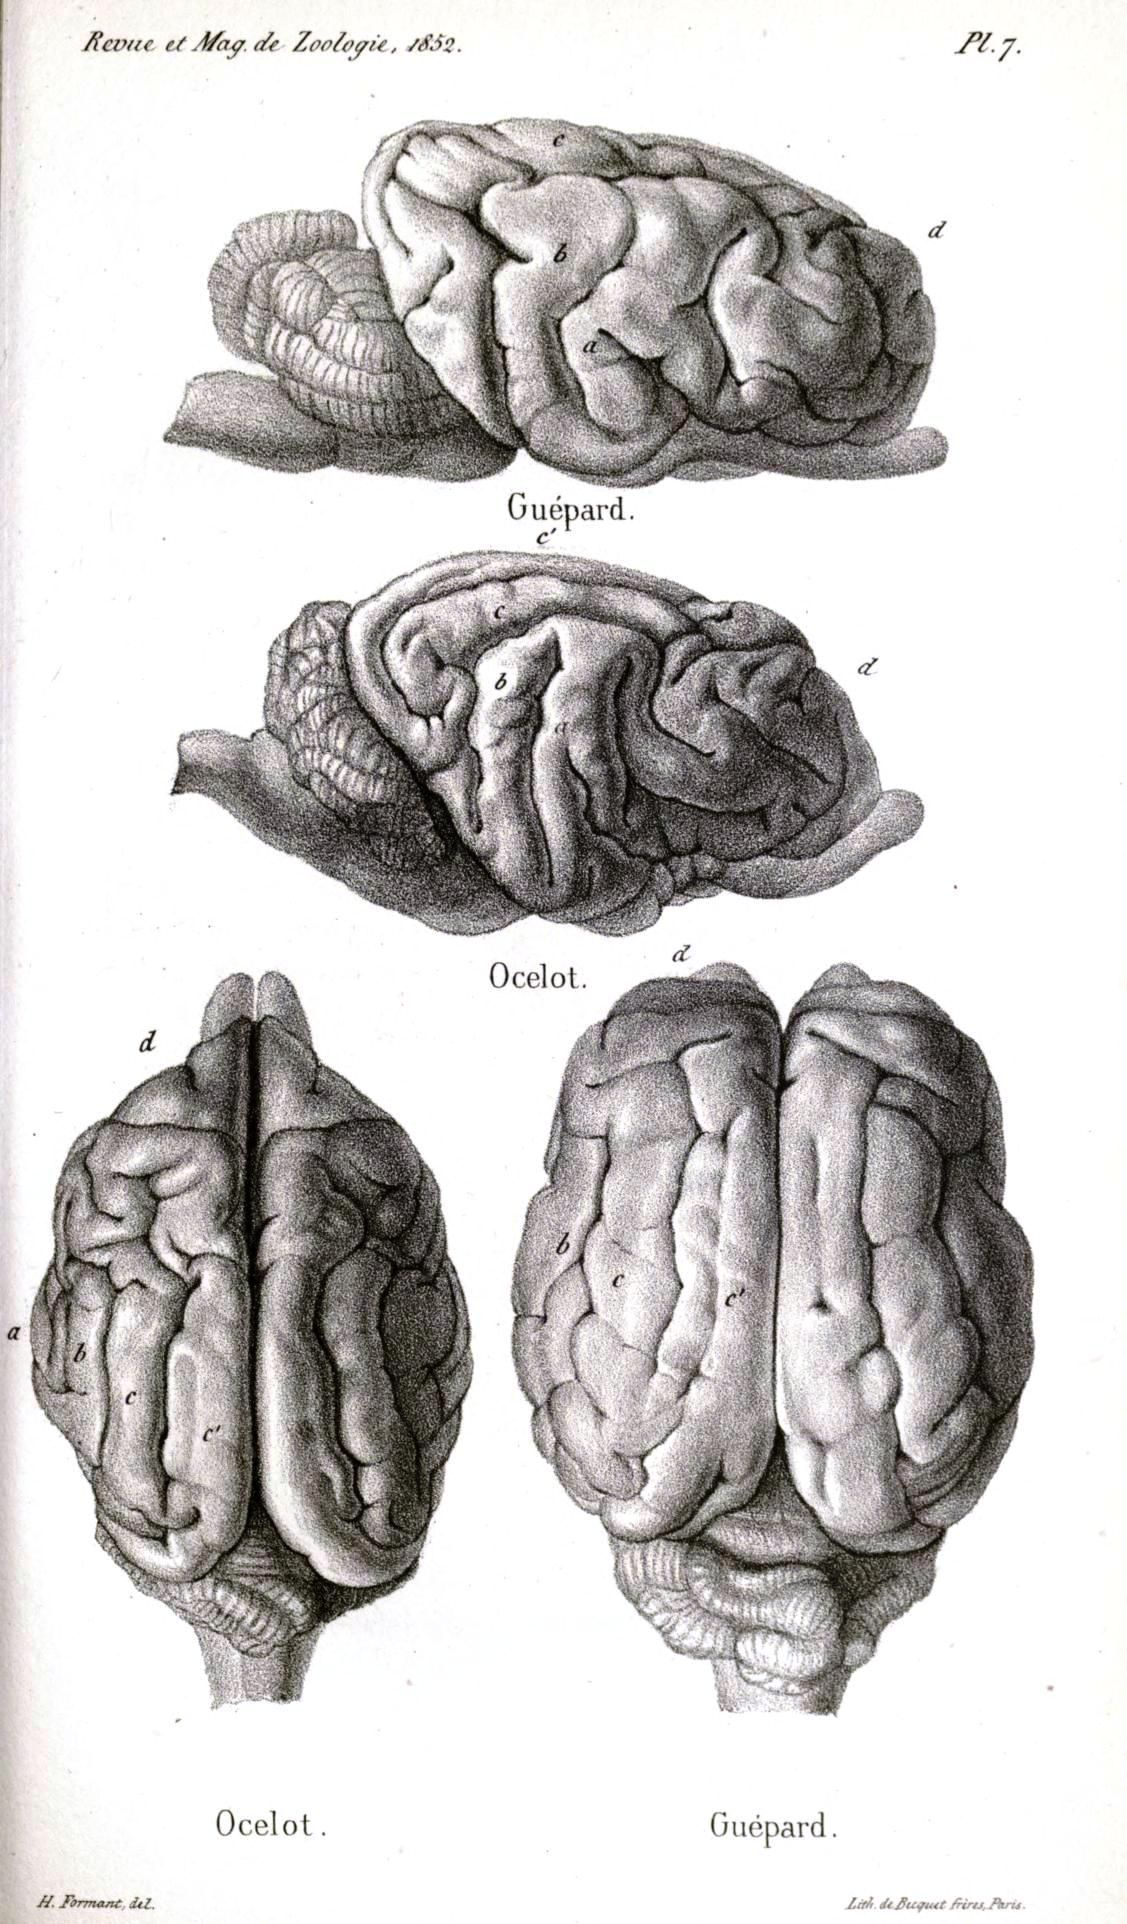 Comparative Brain Anatomy Cheetah And Ocelot From Revue Et Magasin